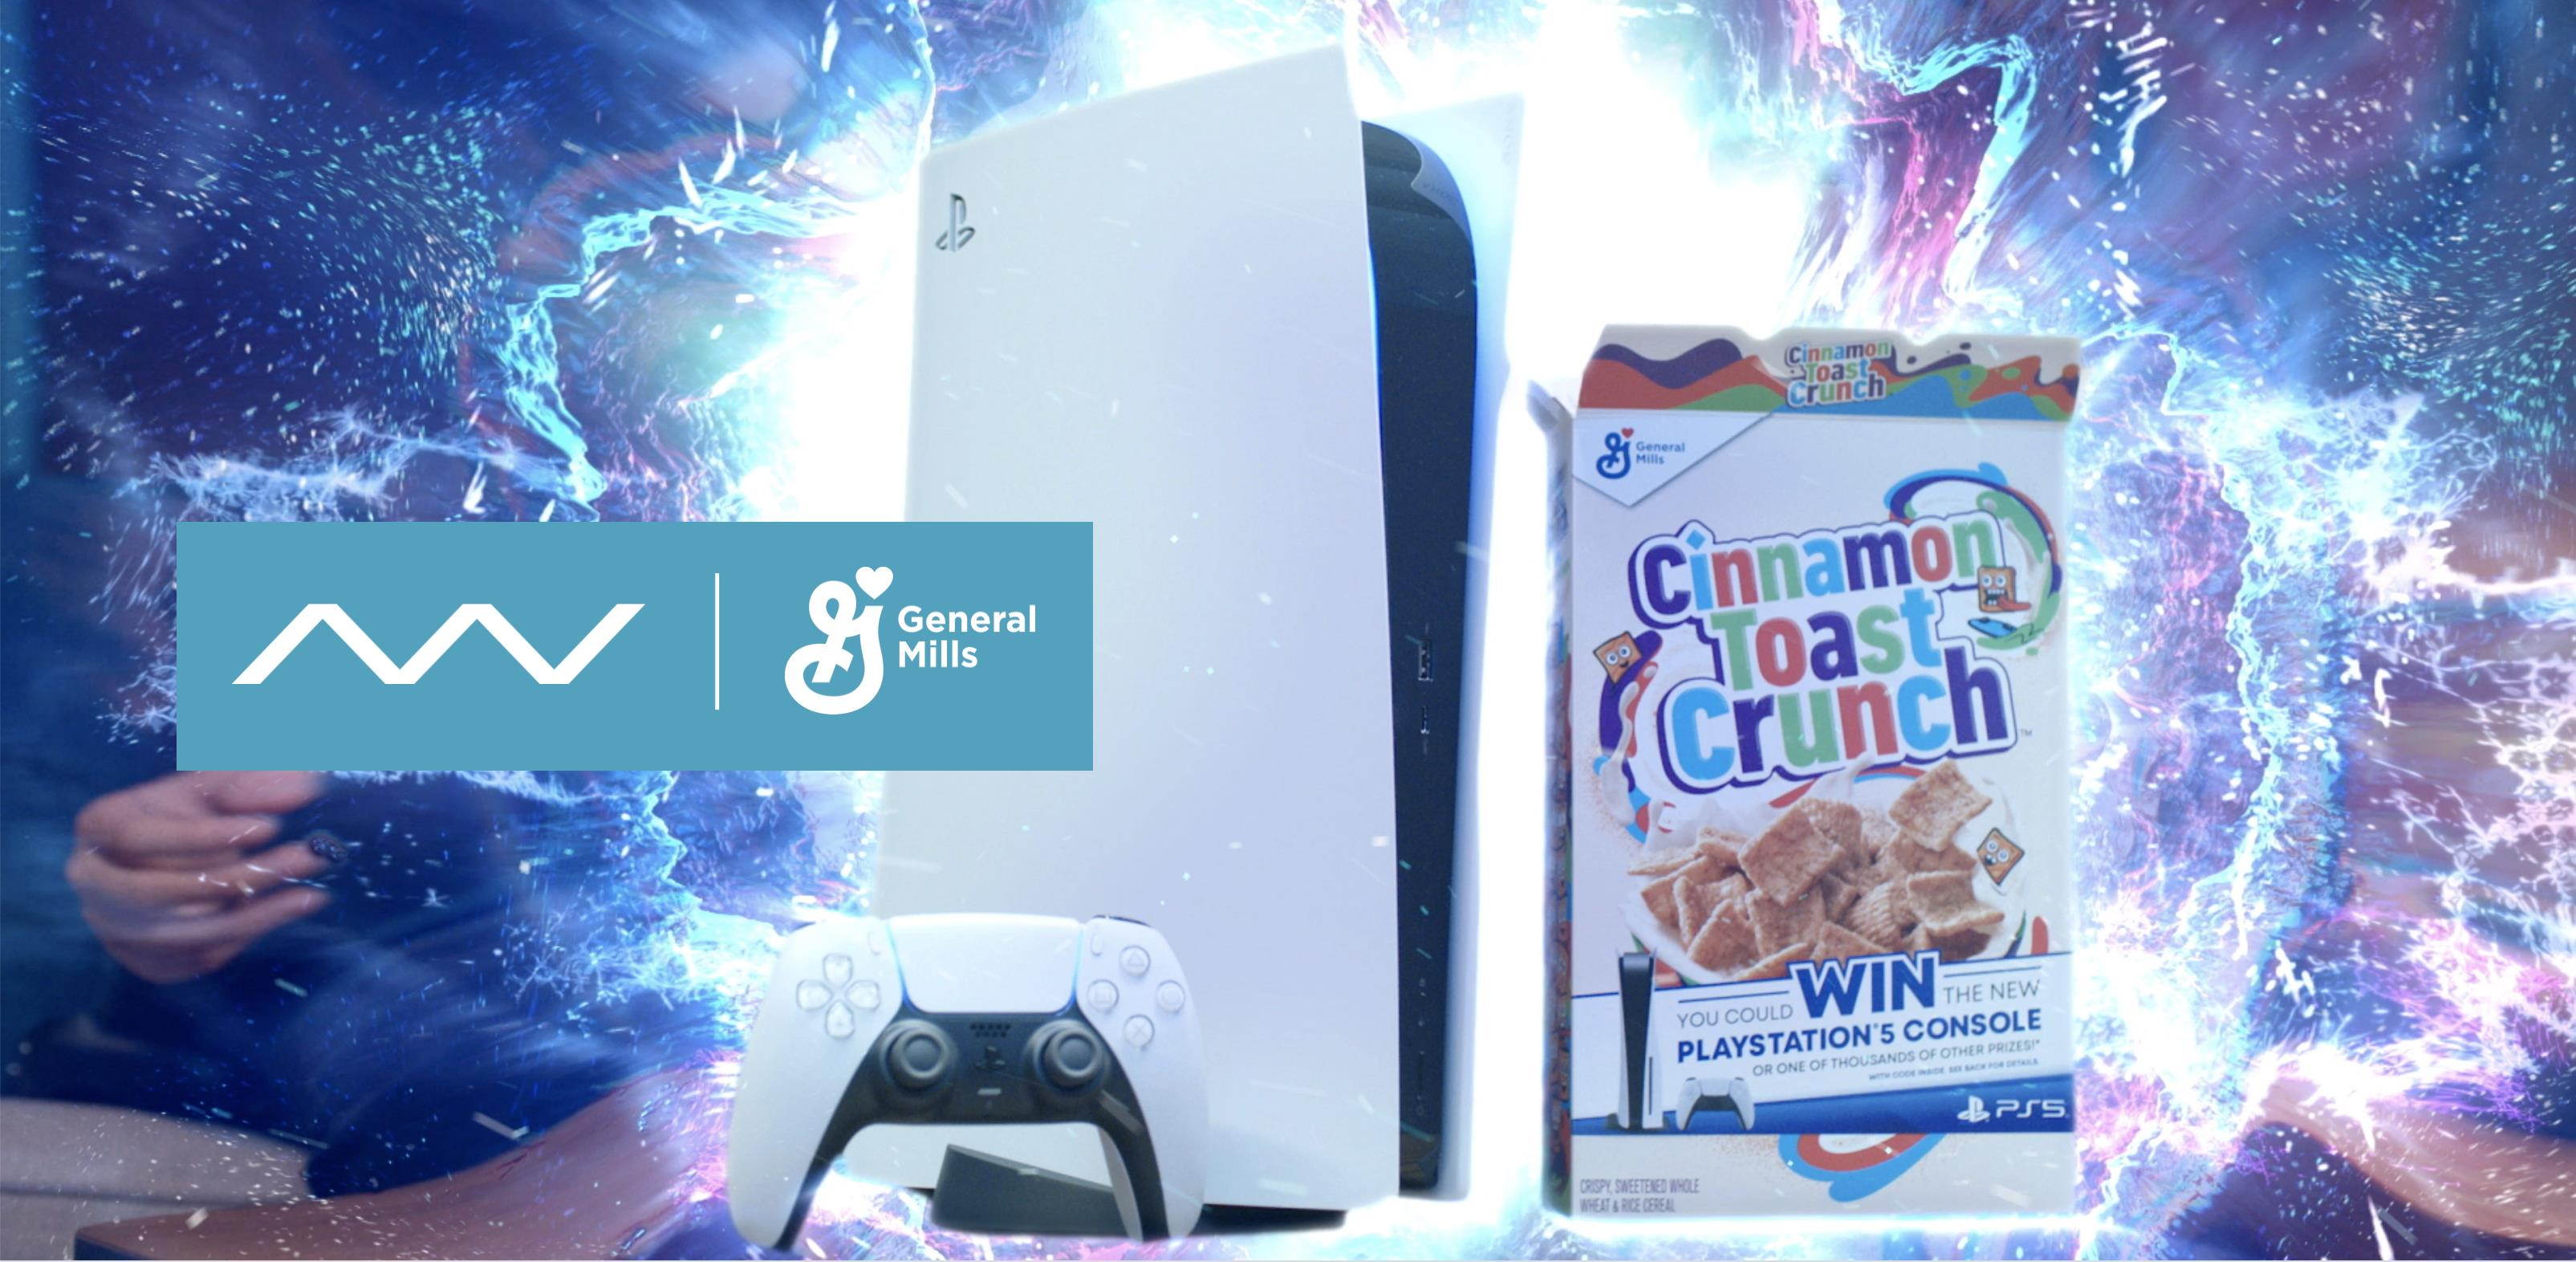 Big-G-Cereals-PS5